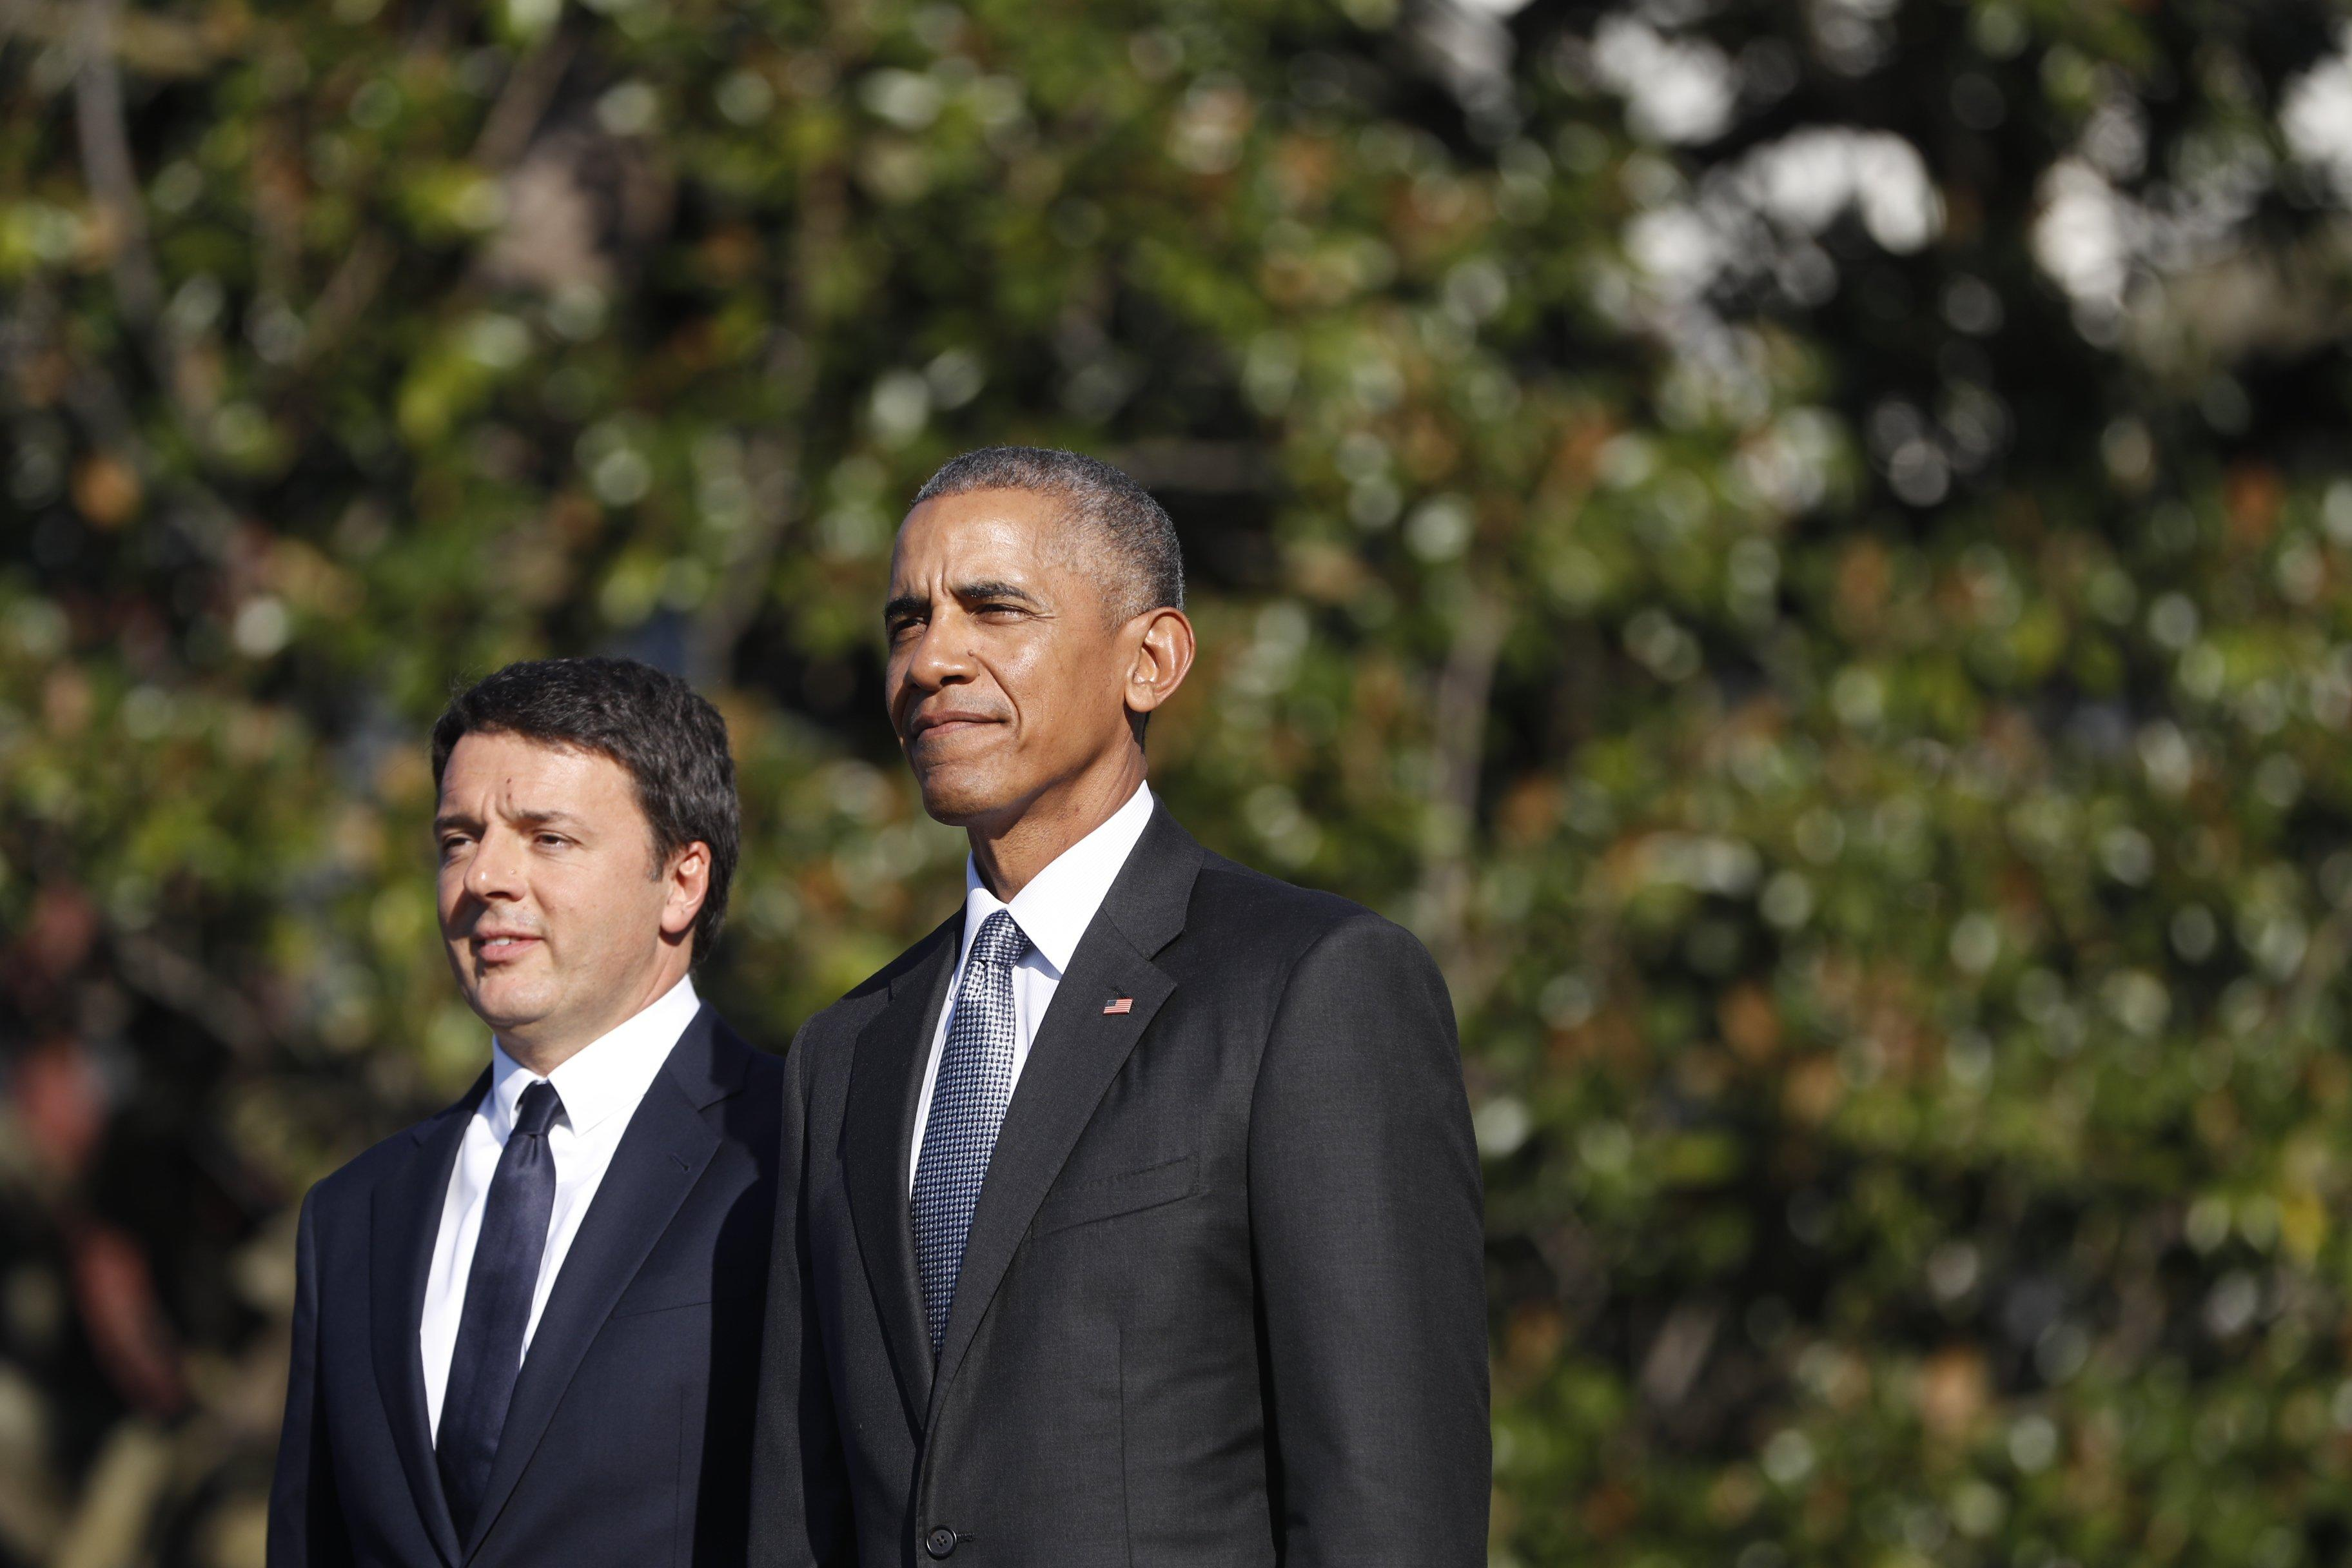 What to Know About Italian Prime Minister Matteo Renzi's Visit to the White House